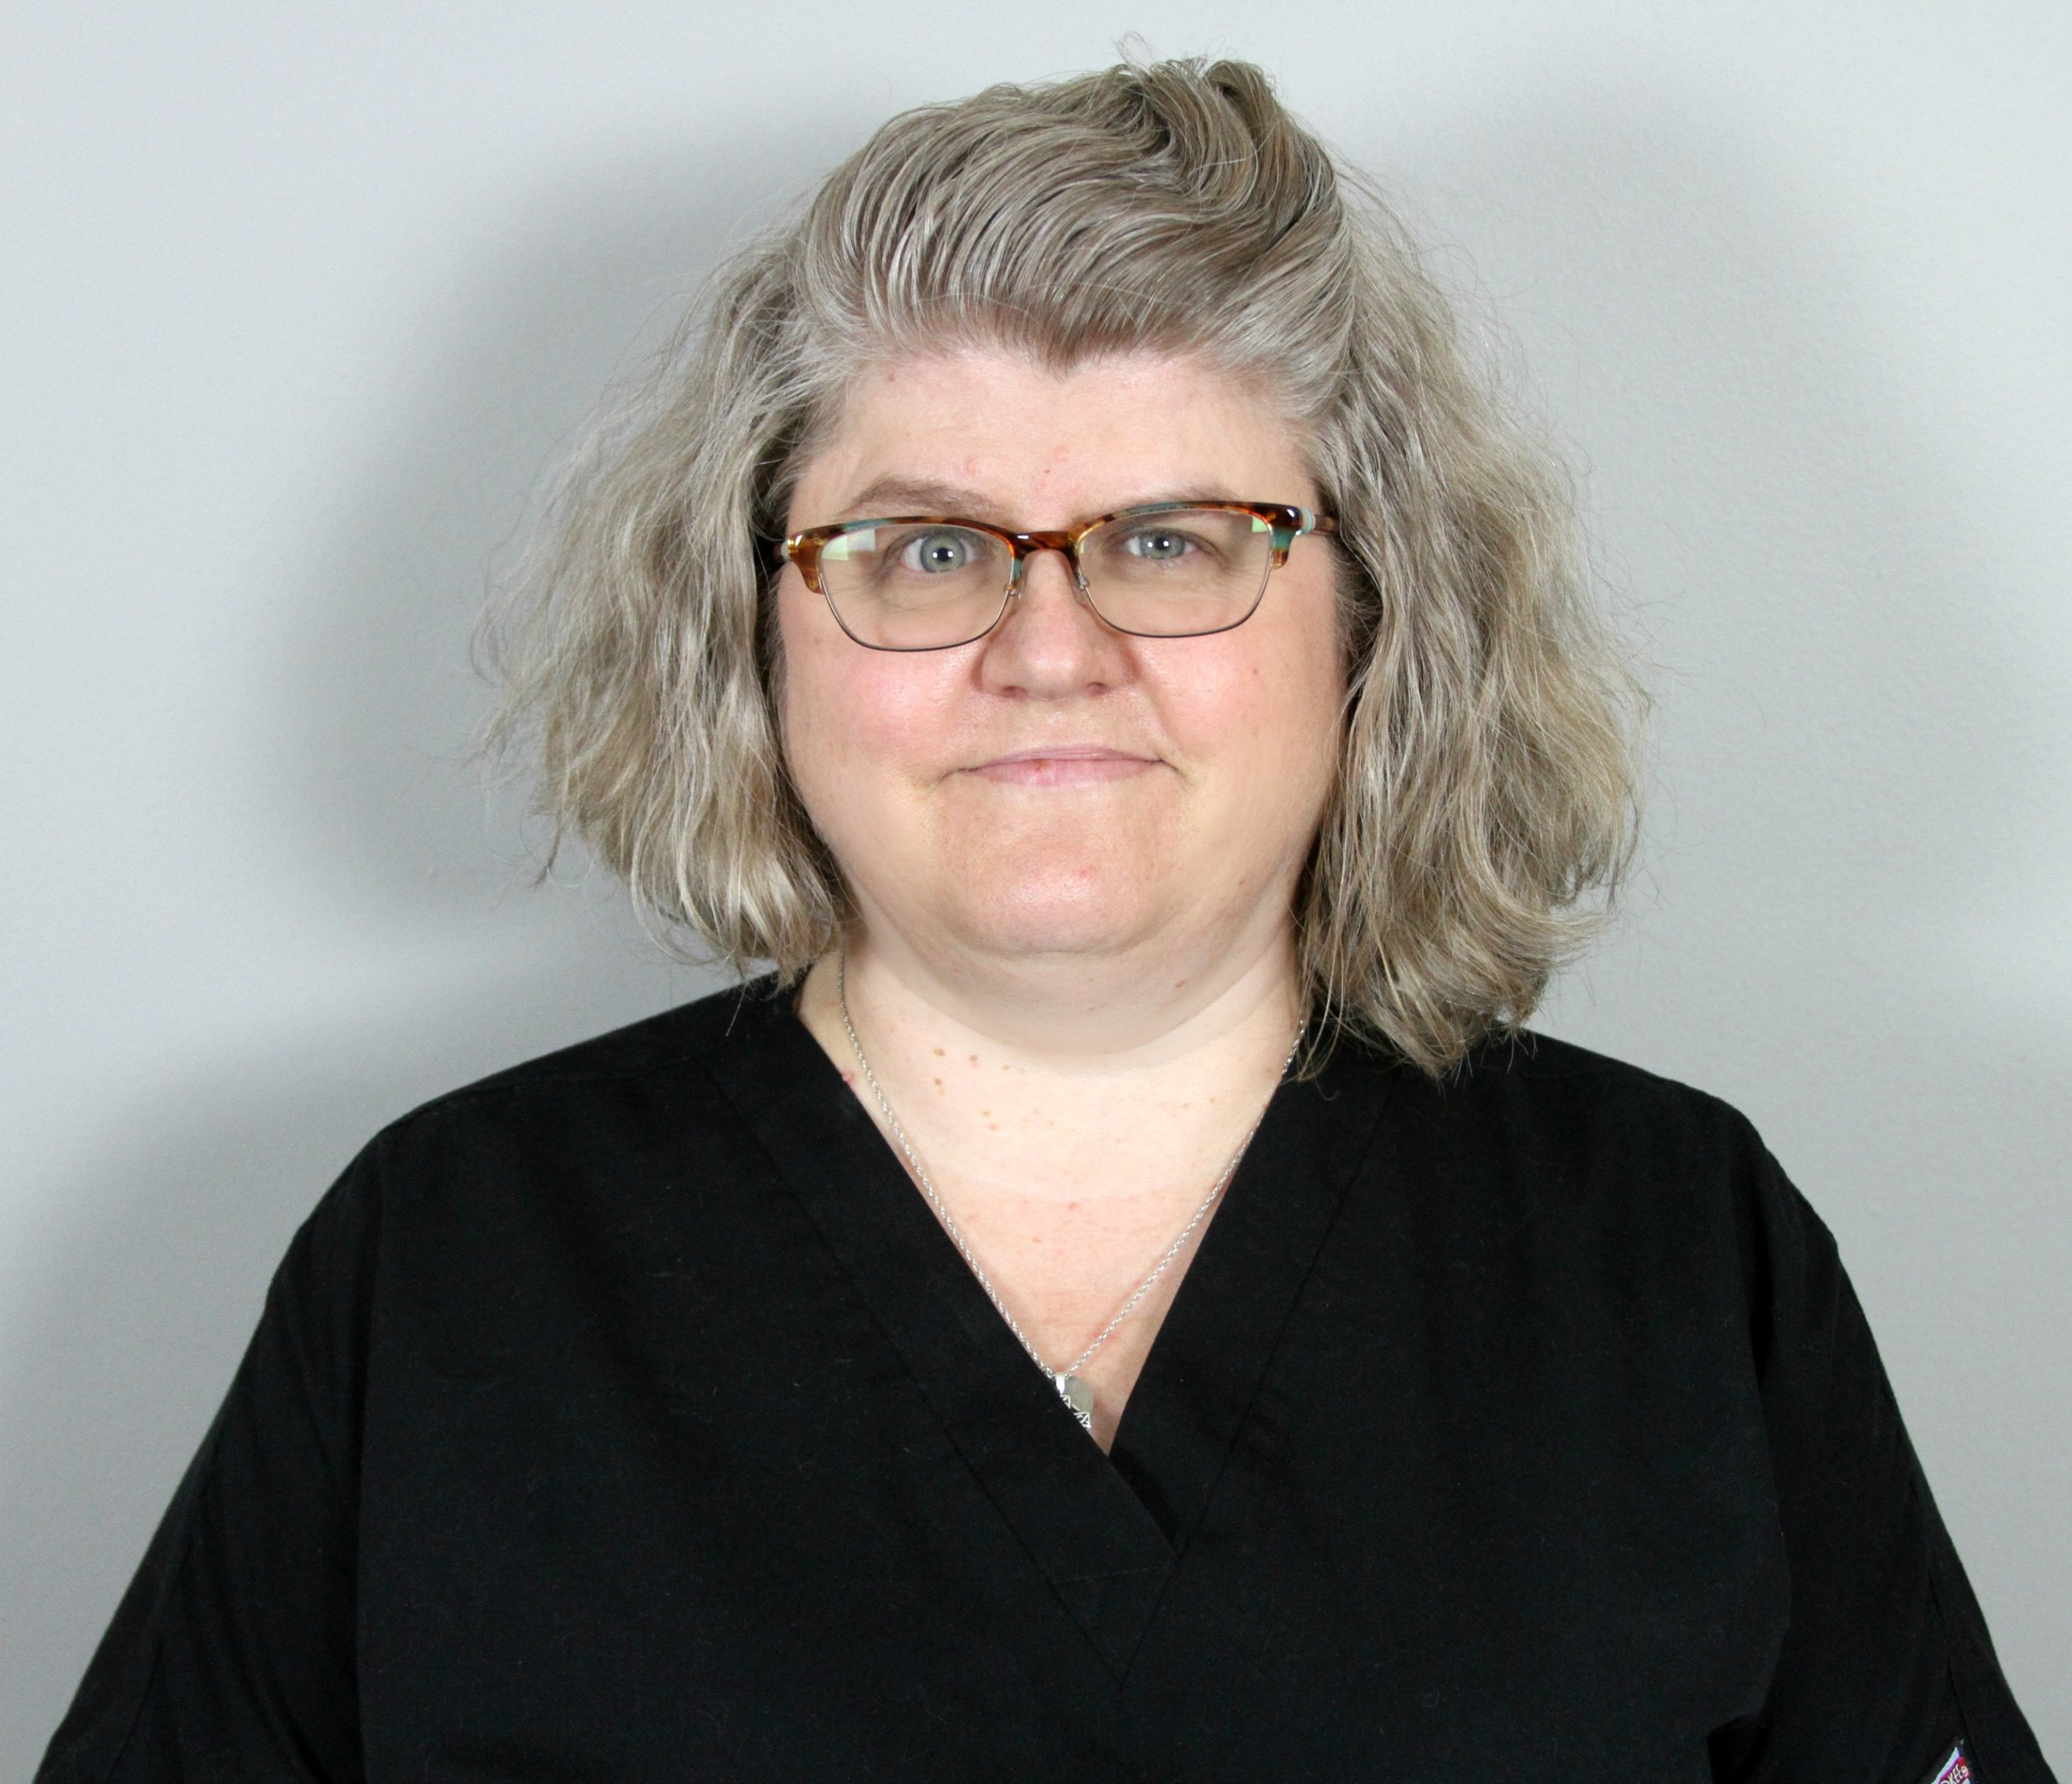 Heather is an Ophthalmic Technician at McKnight Eye centers. She has been in the industry for 18 years and is a Certified Ophthalmic Assistant (C.O.A.) as well as a Certified Ophthalmic Scribe (O.S.C). Heather is extremely dedicated to the care of our patients and always has the patient's best interests in mind. Heather always goes the extra mile when it comes to patient care ensuring that everything is done in an efficient and effective manner. Heather is currently working towards her next certification which is becoming a Certified Ophthalmic Technician (C.O.T.). During her free time Heather enjoys spending time with her 2 cats as well as her nieces and nephews. She also enjoys crafting and loves Disney. She and her family make a trip to Orlando every year to visit Disney World. She resides in Kansas City, MO